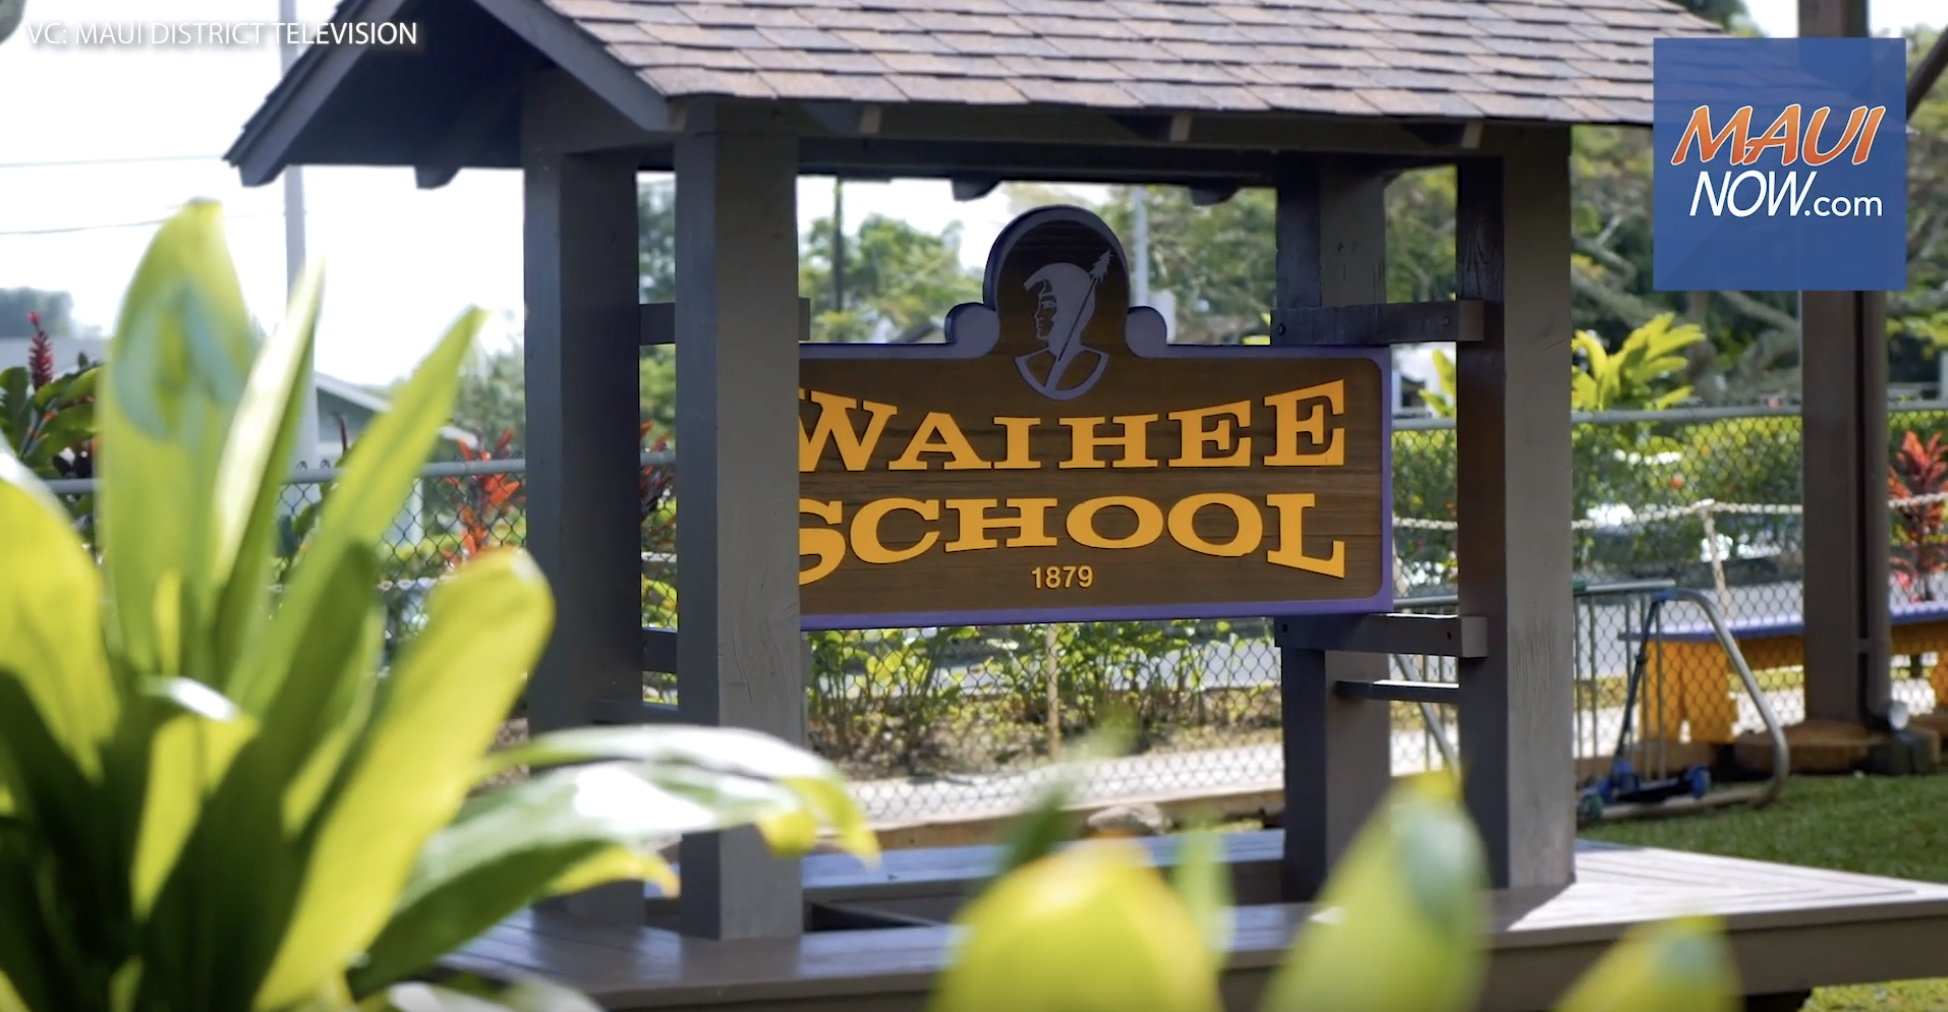 VIDEO: Waiheʻe Elementary School Spreads the Aloha